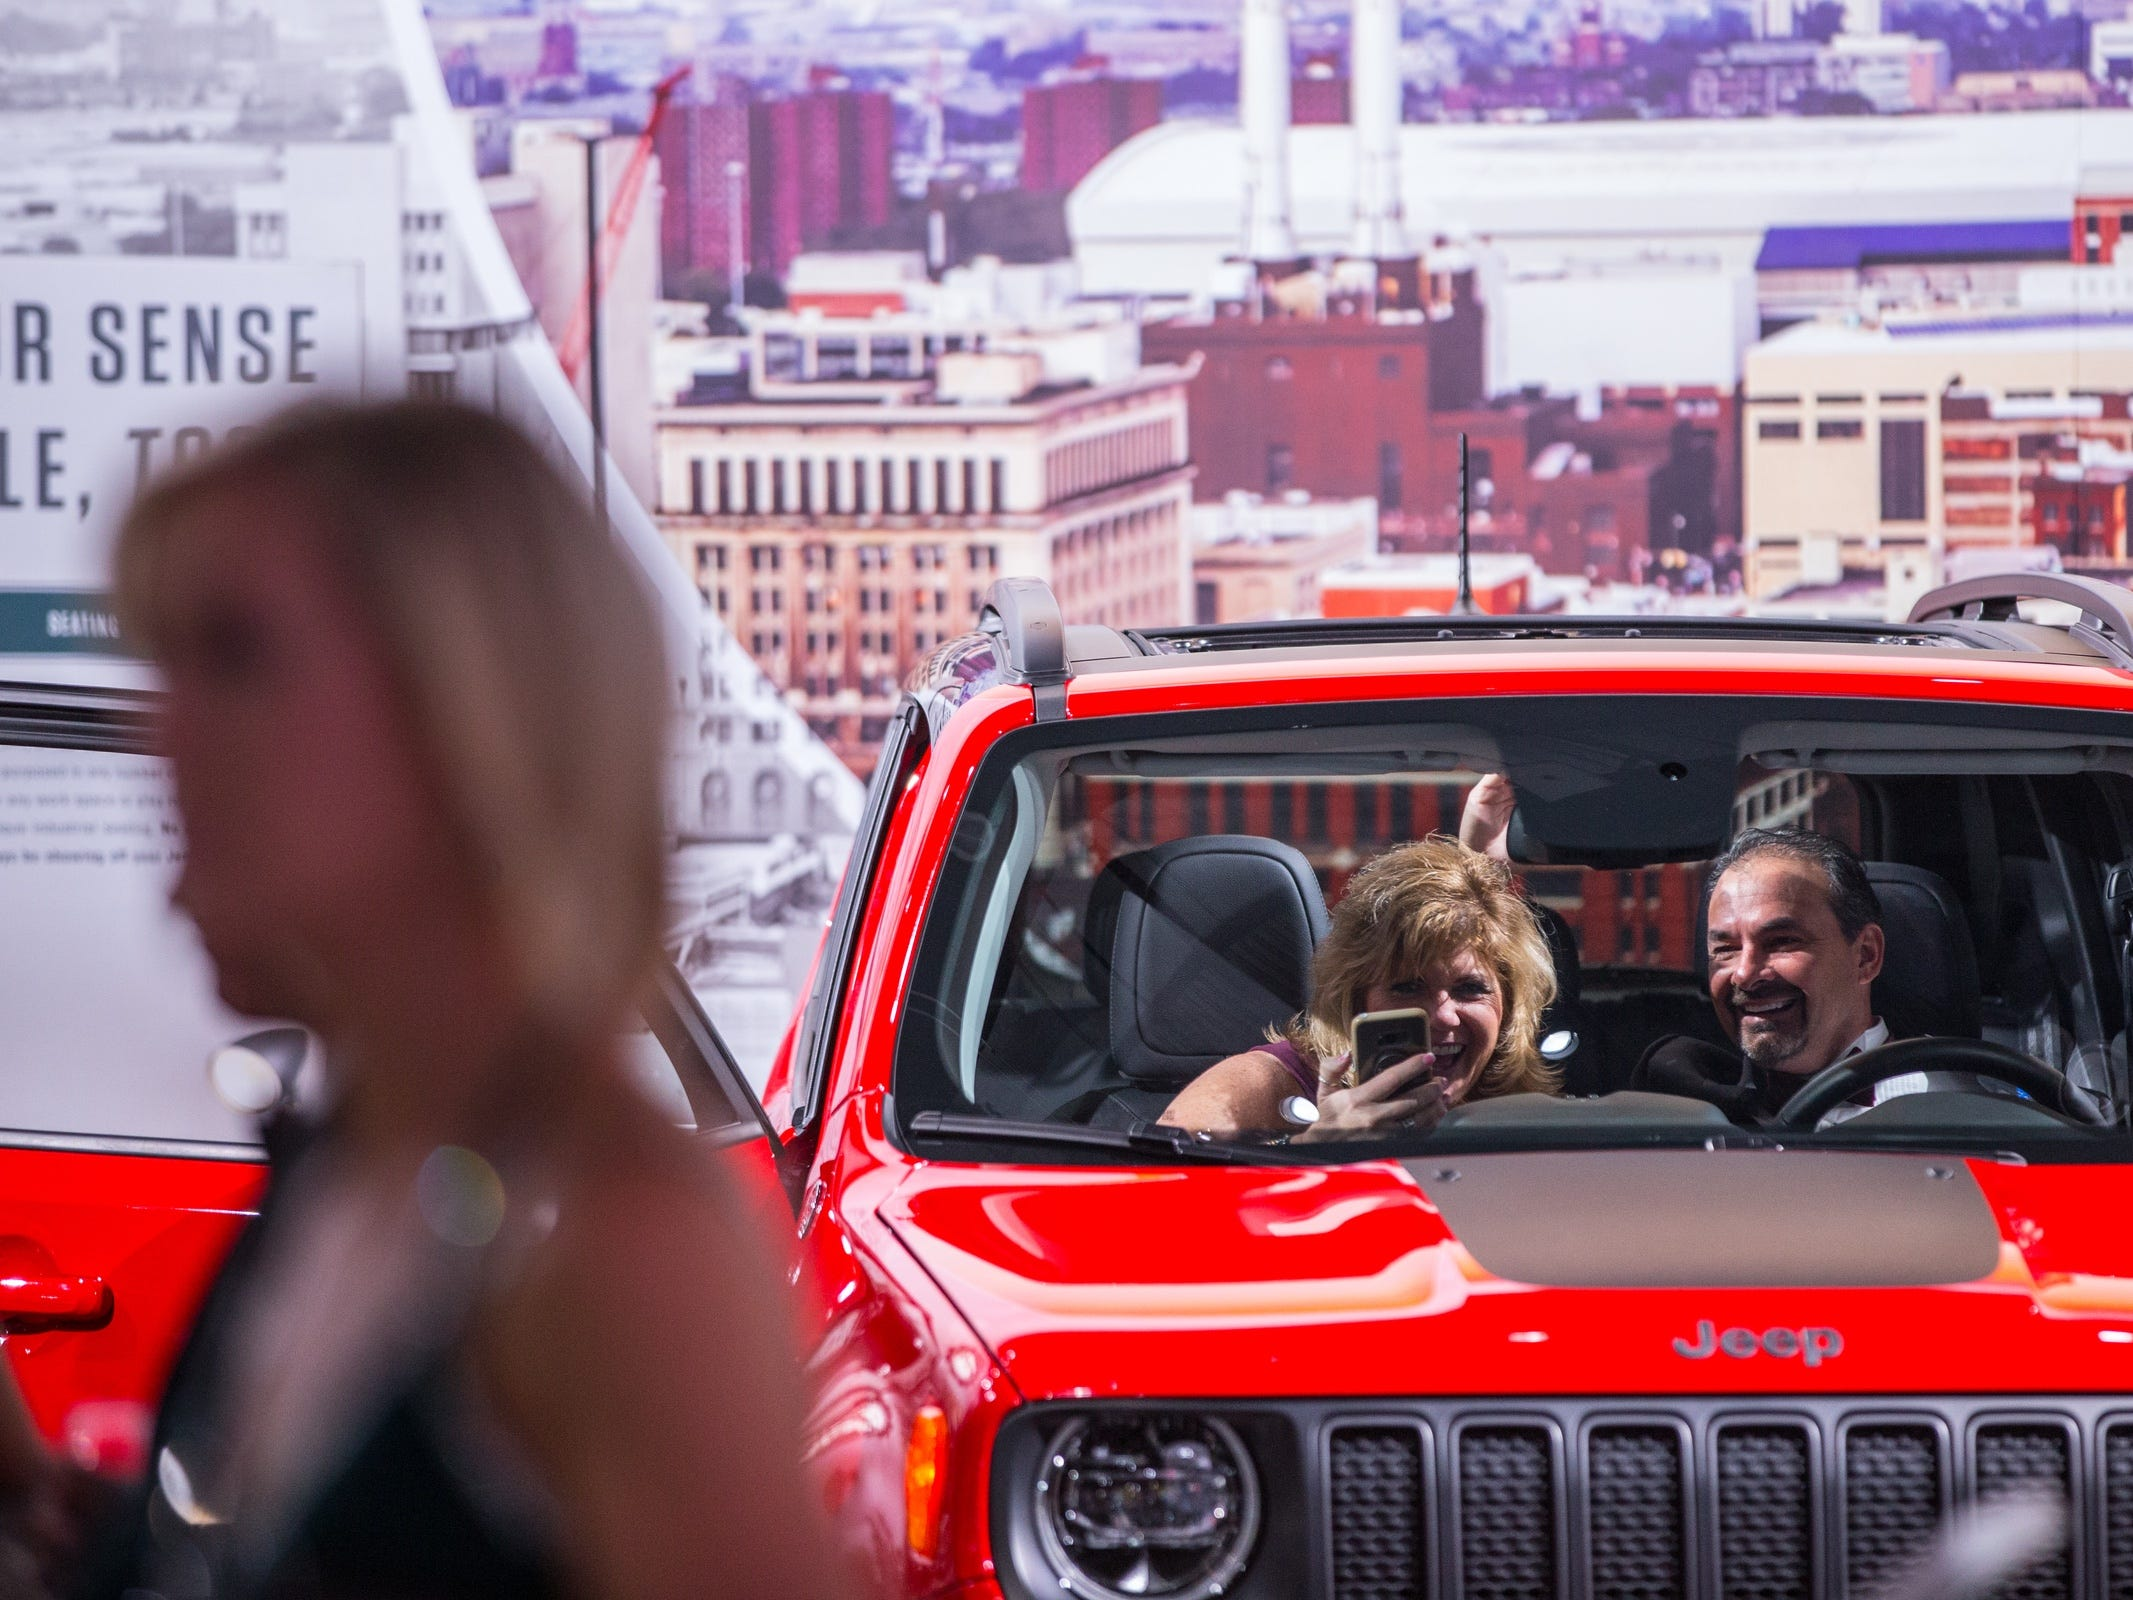 Dan Spagnoletti of Howell and his wife Sheryl Spagnoletti take a photo in a Jeep Renegade while looking at car for their child during the 2019 North American International Auto Show Charity Preview at Cobo Center in Detroit on Friday, January 18, 2019.